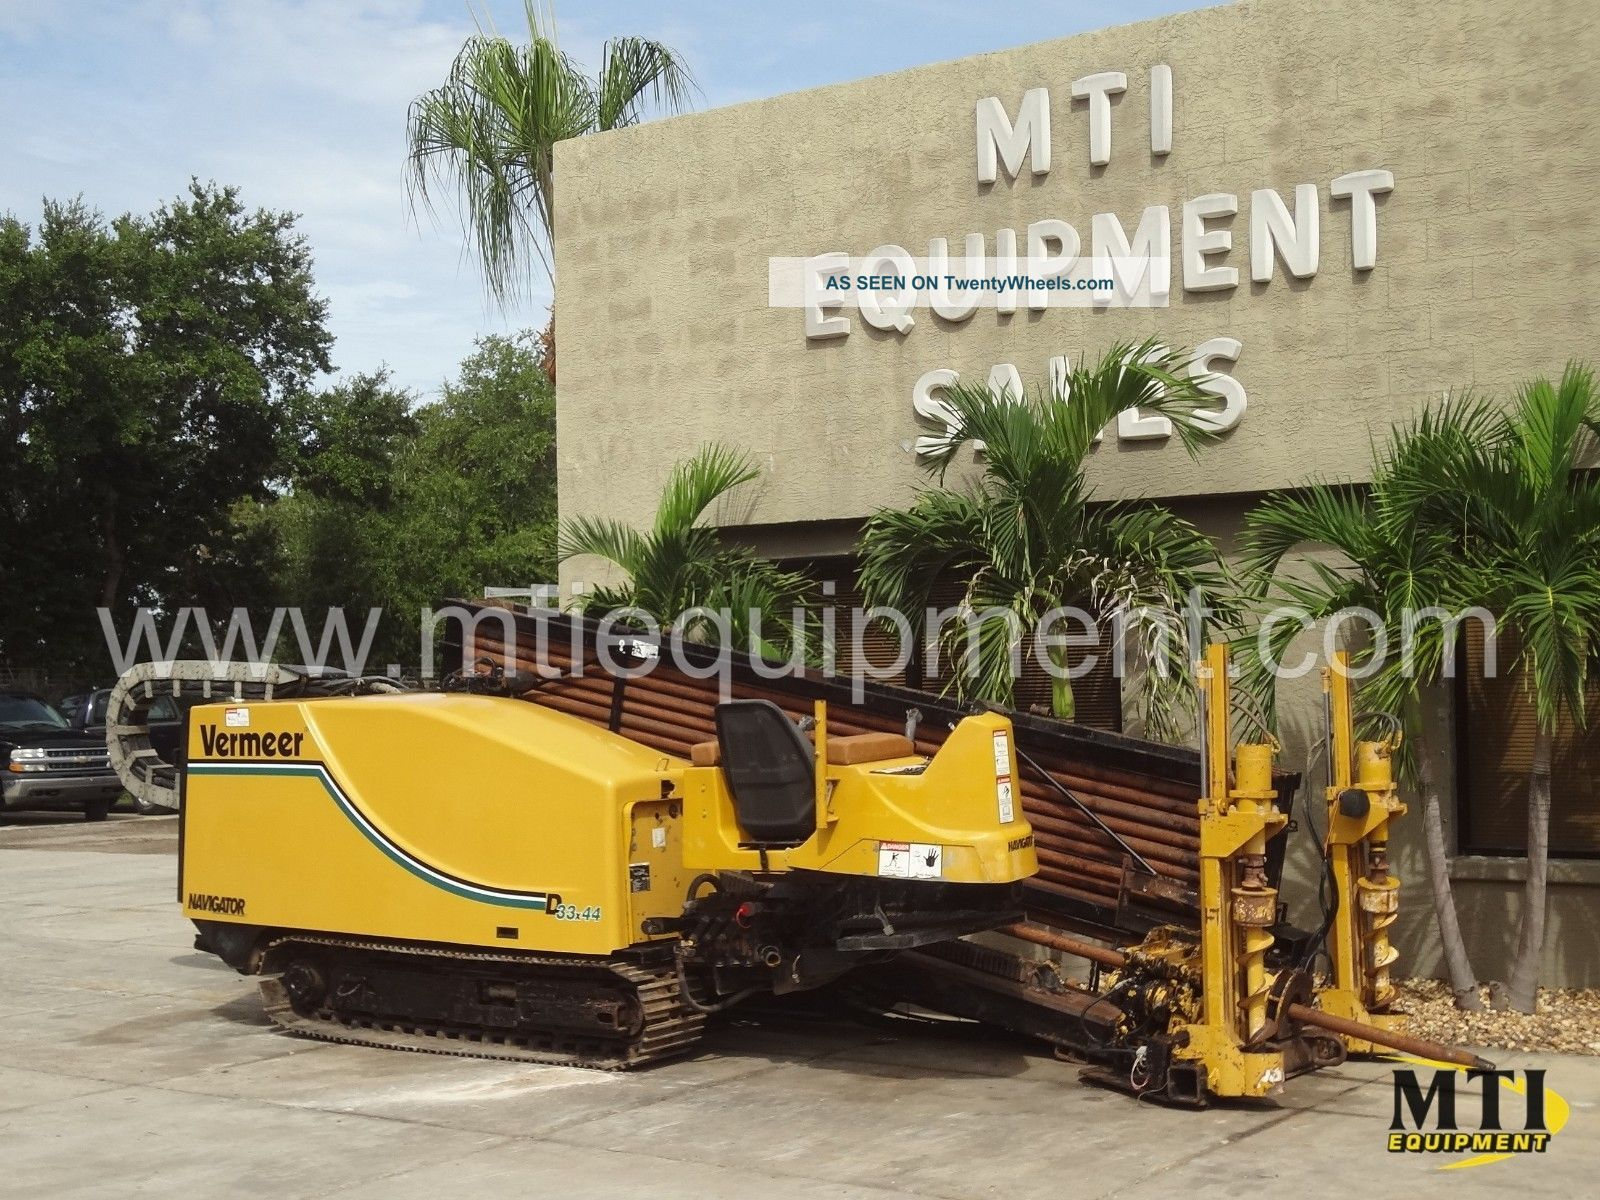 2000 Vermeer 33x44 Hdd Directional Drill Inspected,  Tested,  Proven Directional Drills photo